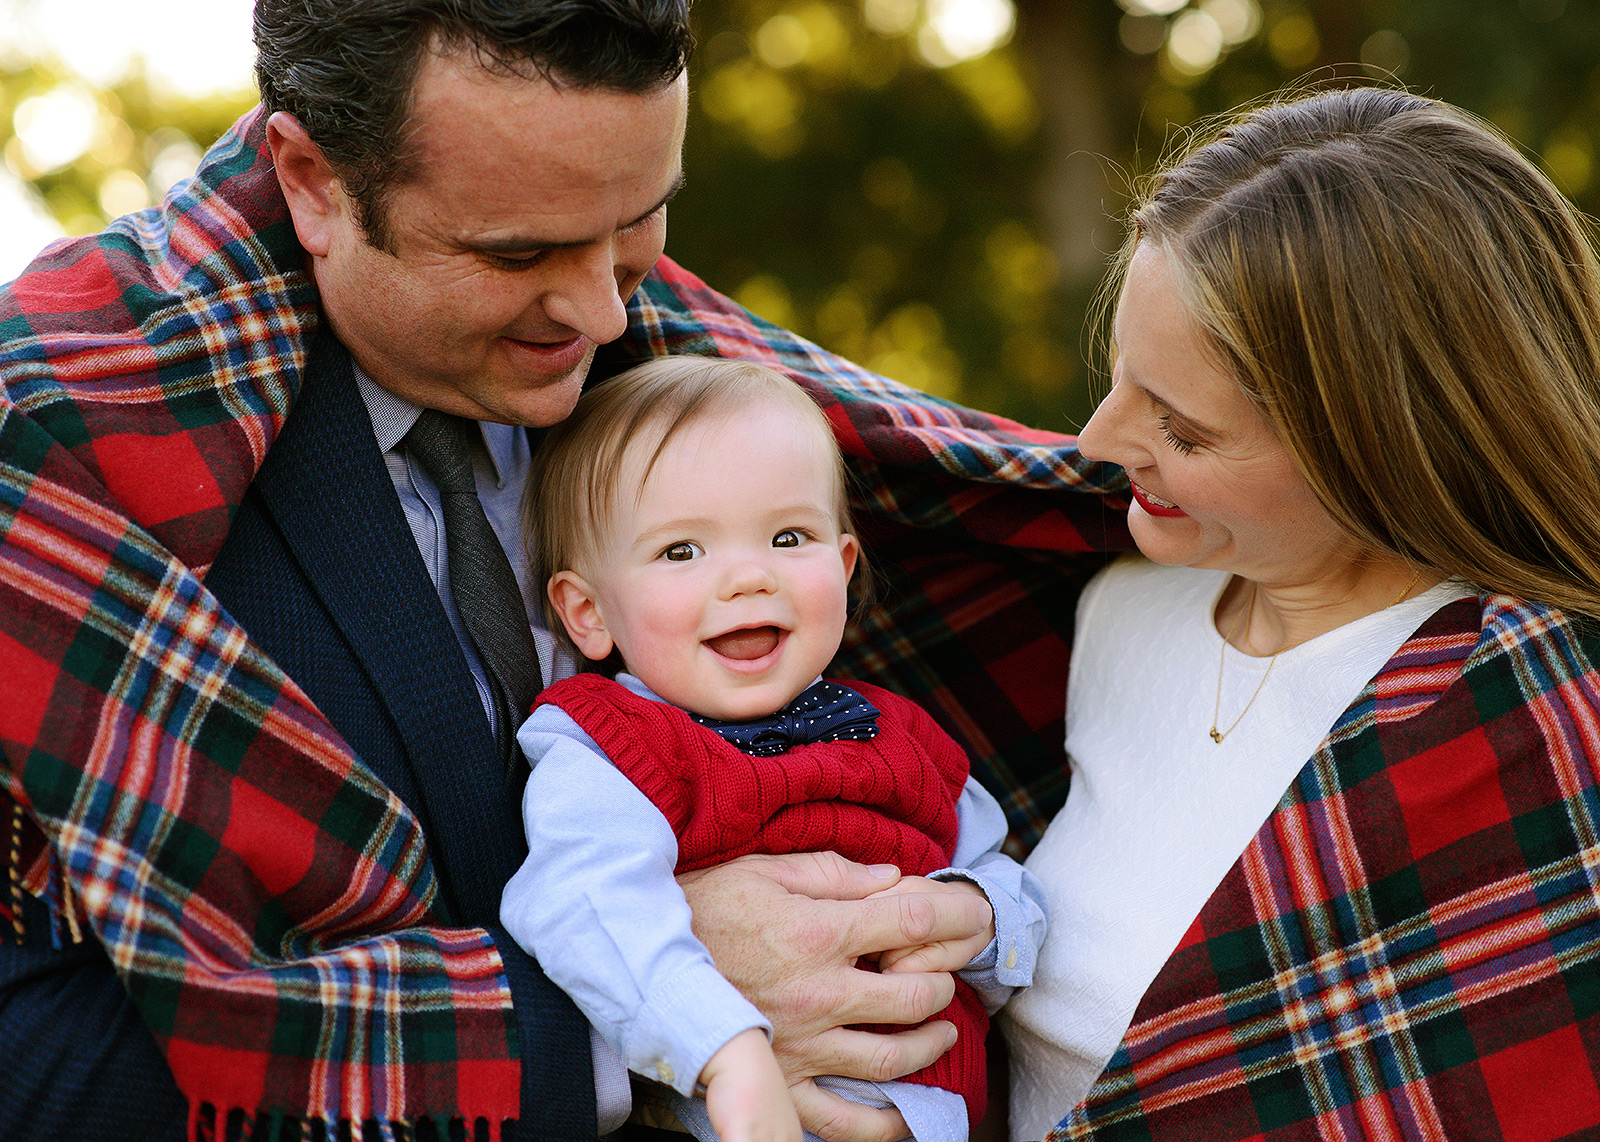 davis arboretum family portraits with a plaid blanket for fall pictures with photographer jill carmel